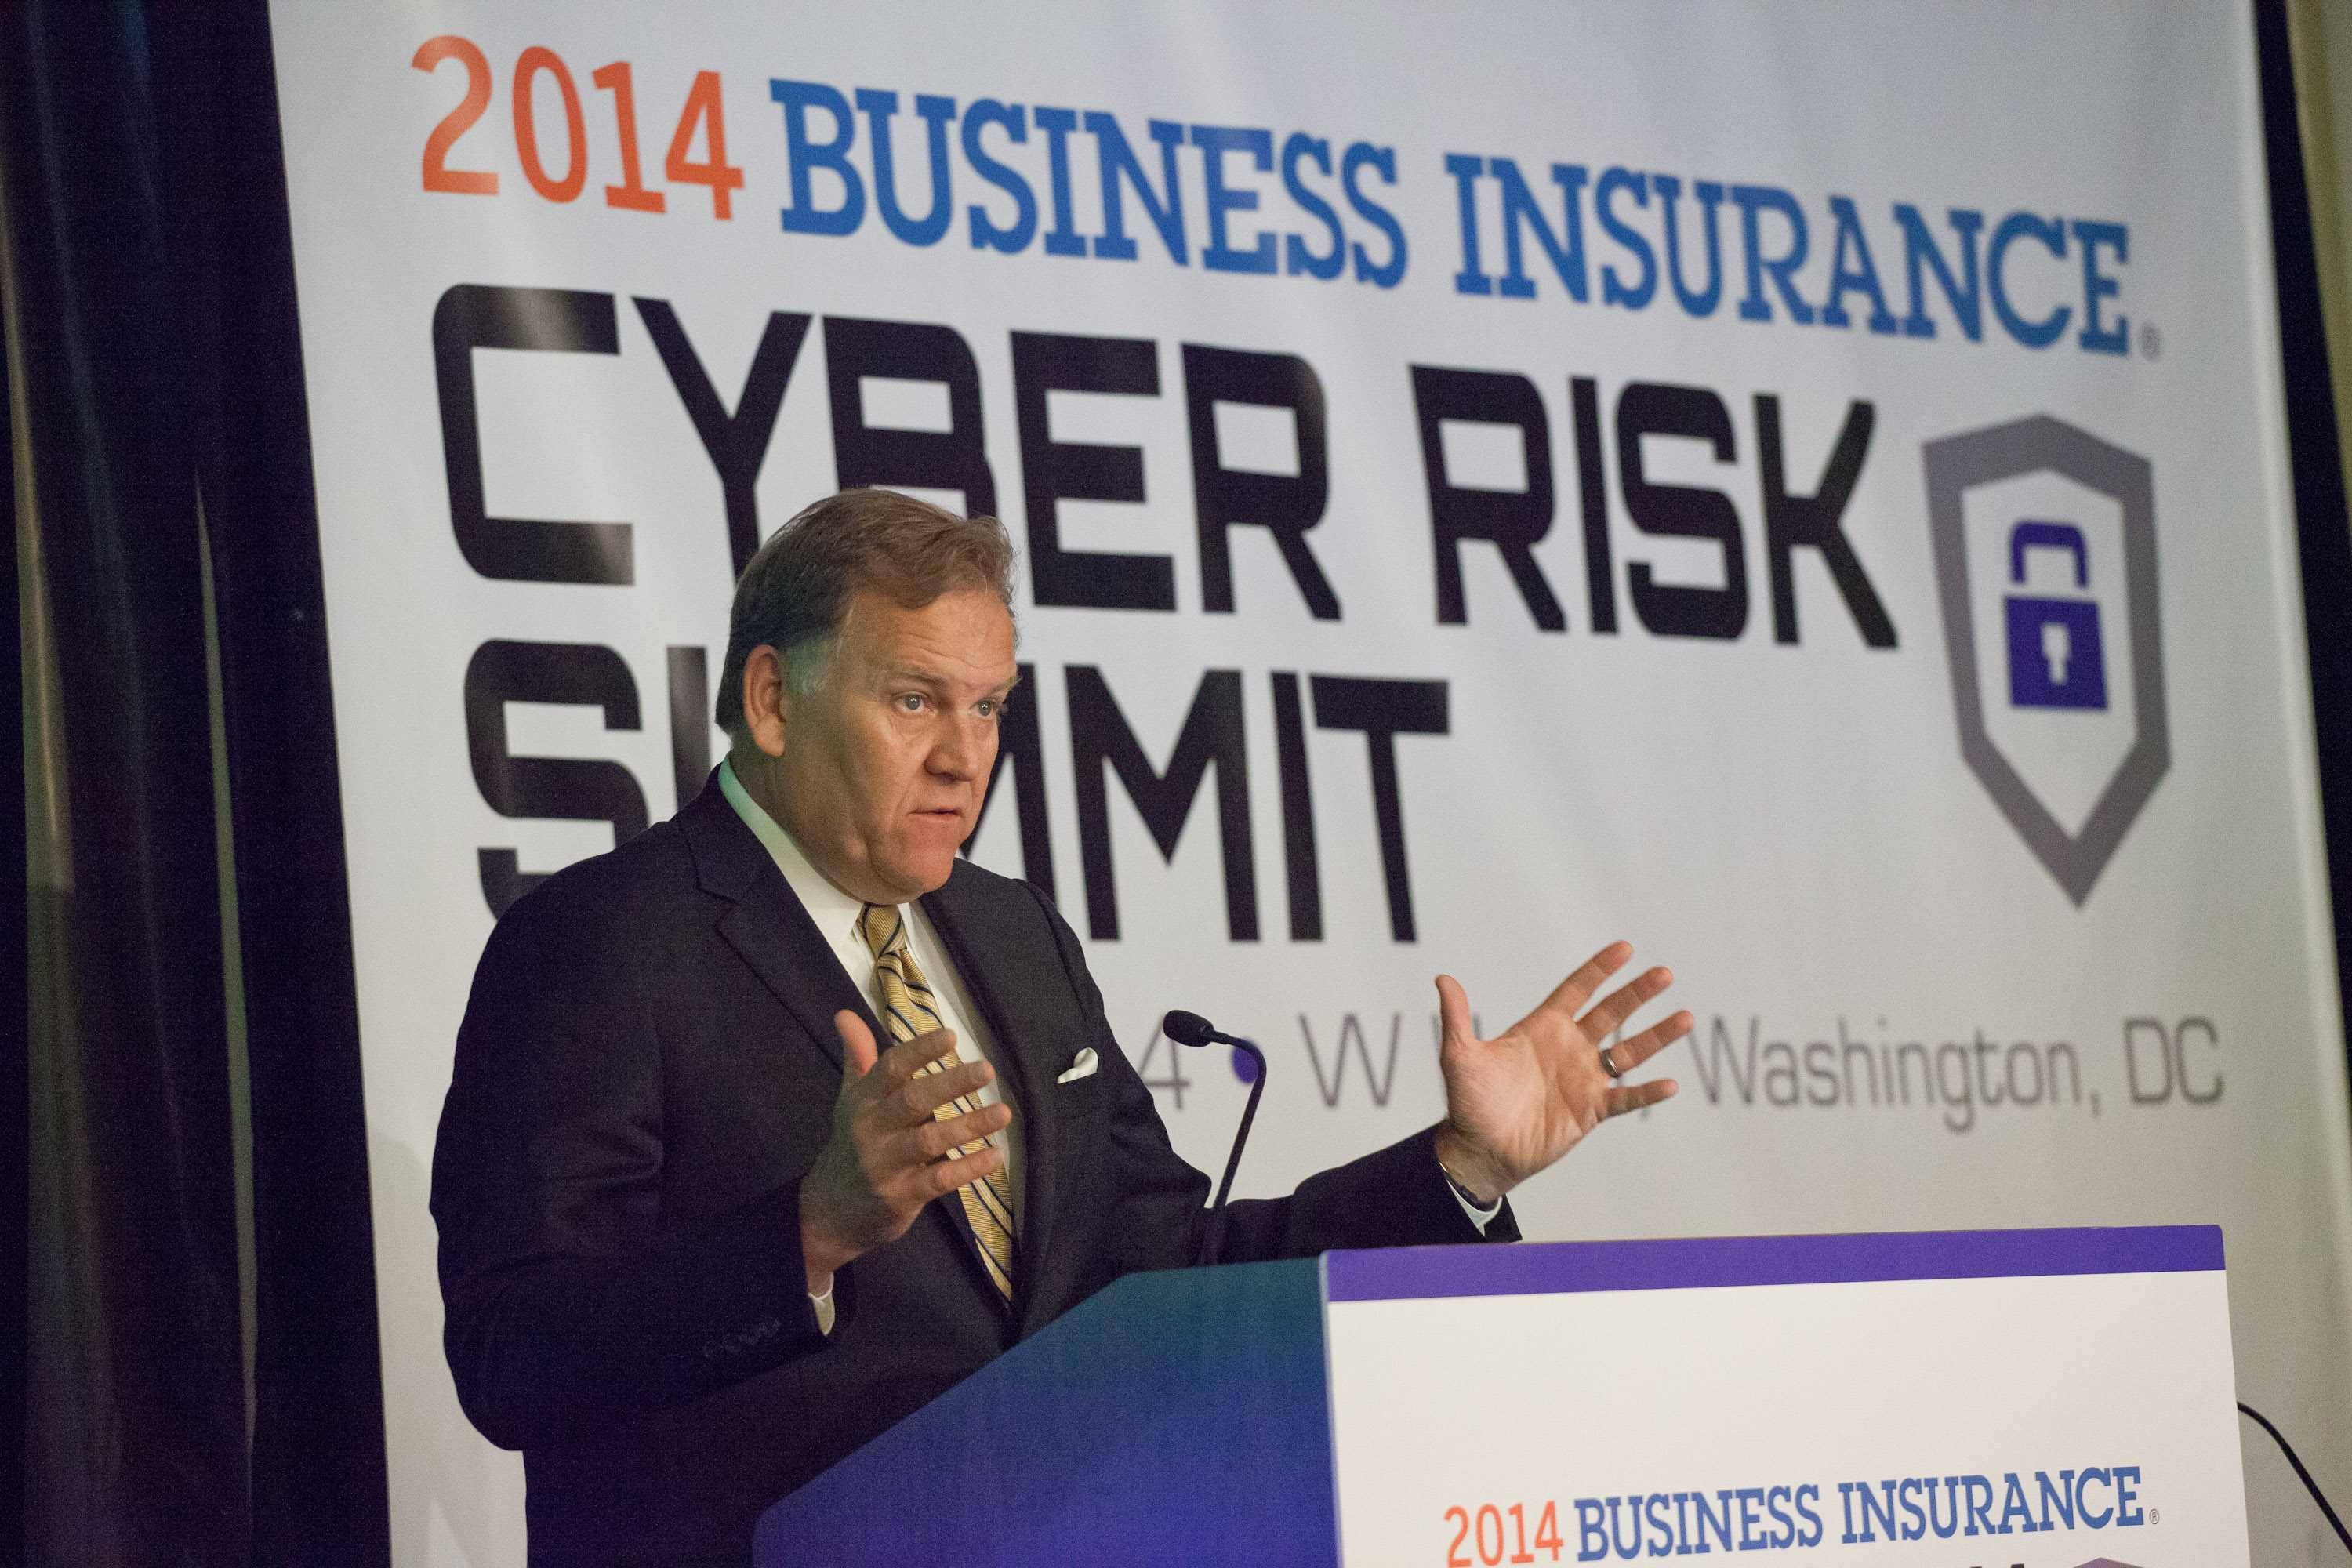 Industry leaders say cyber risk is real